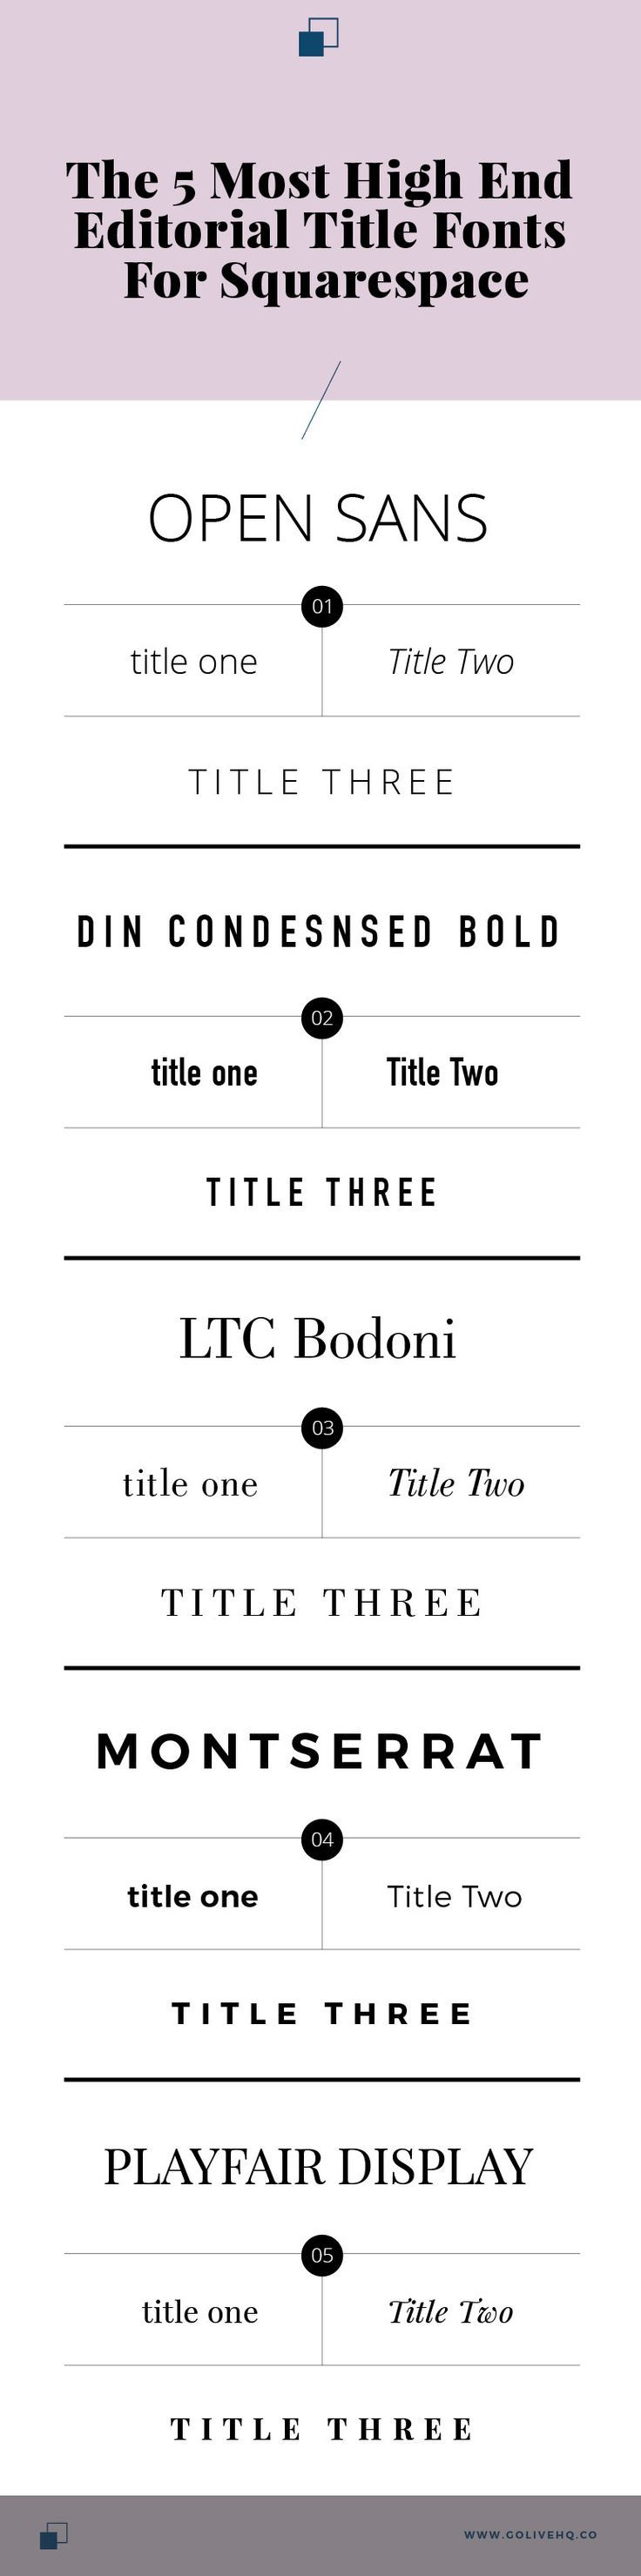 high end fonts for Squarespace | http://golivehq.co